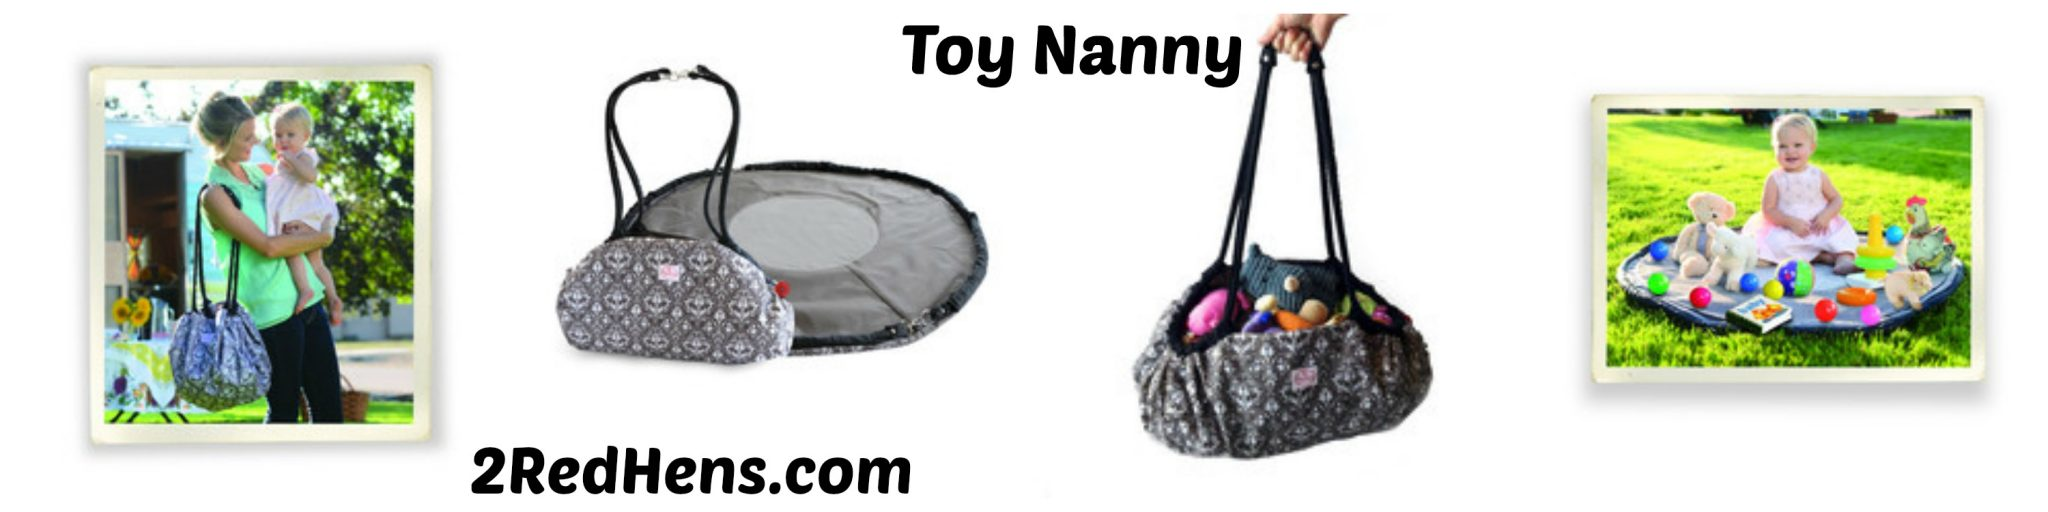 Toy Nanny From Website Collage The Ingenious 2 Red Hens